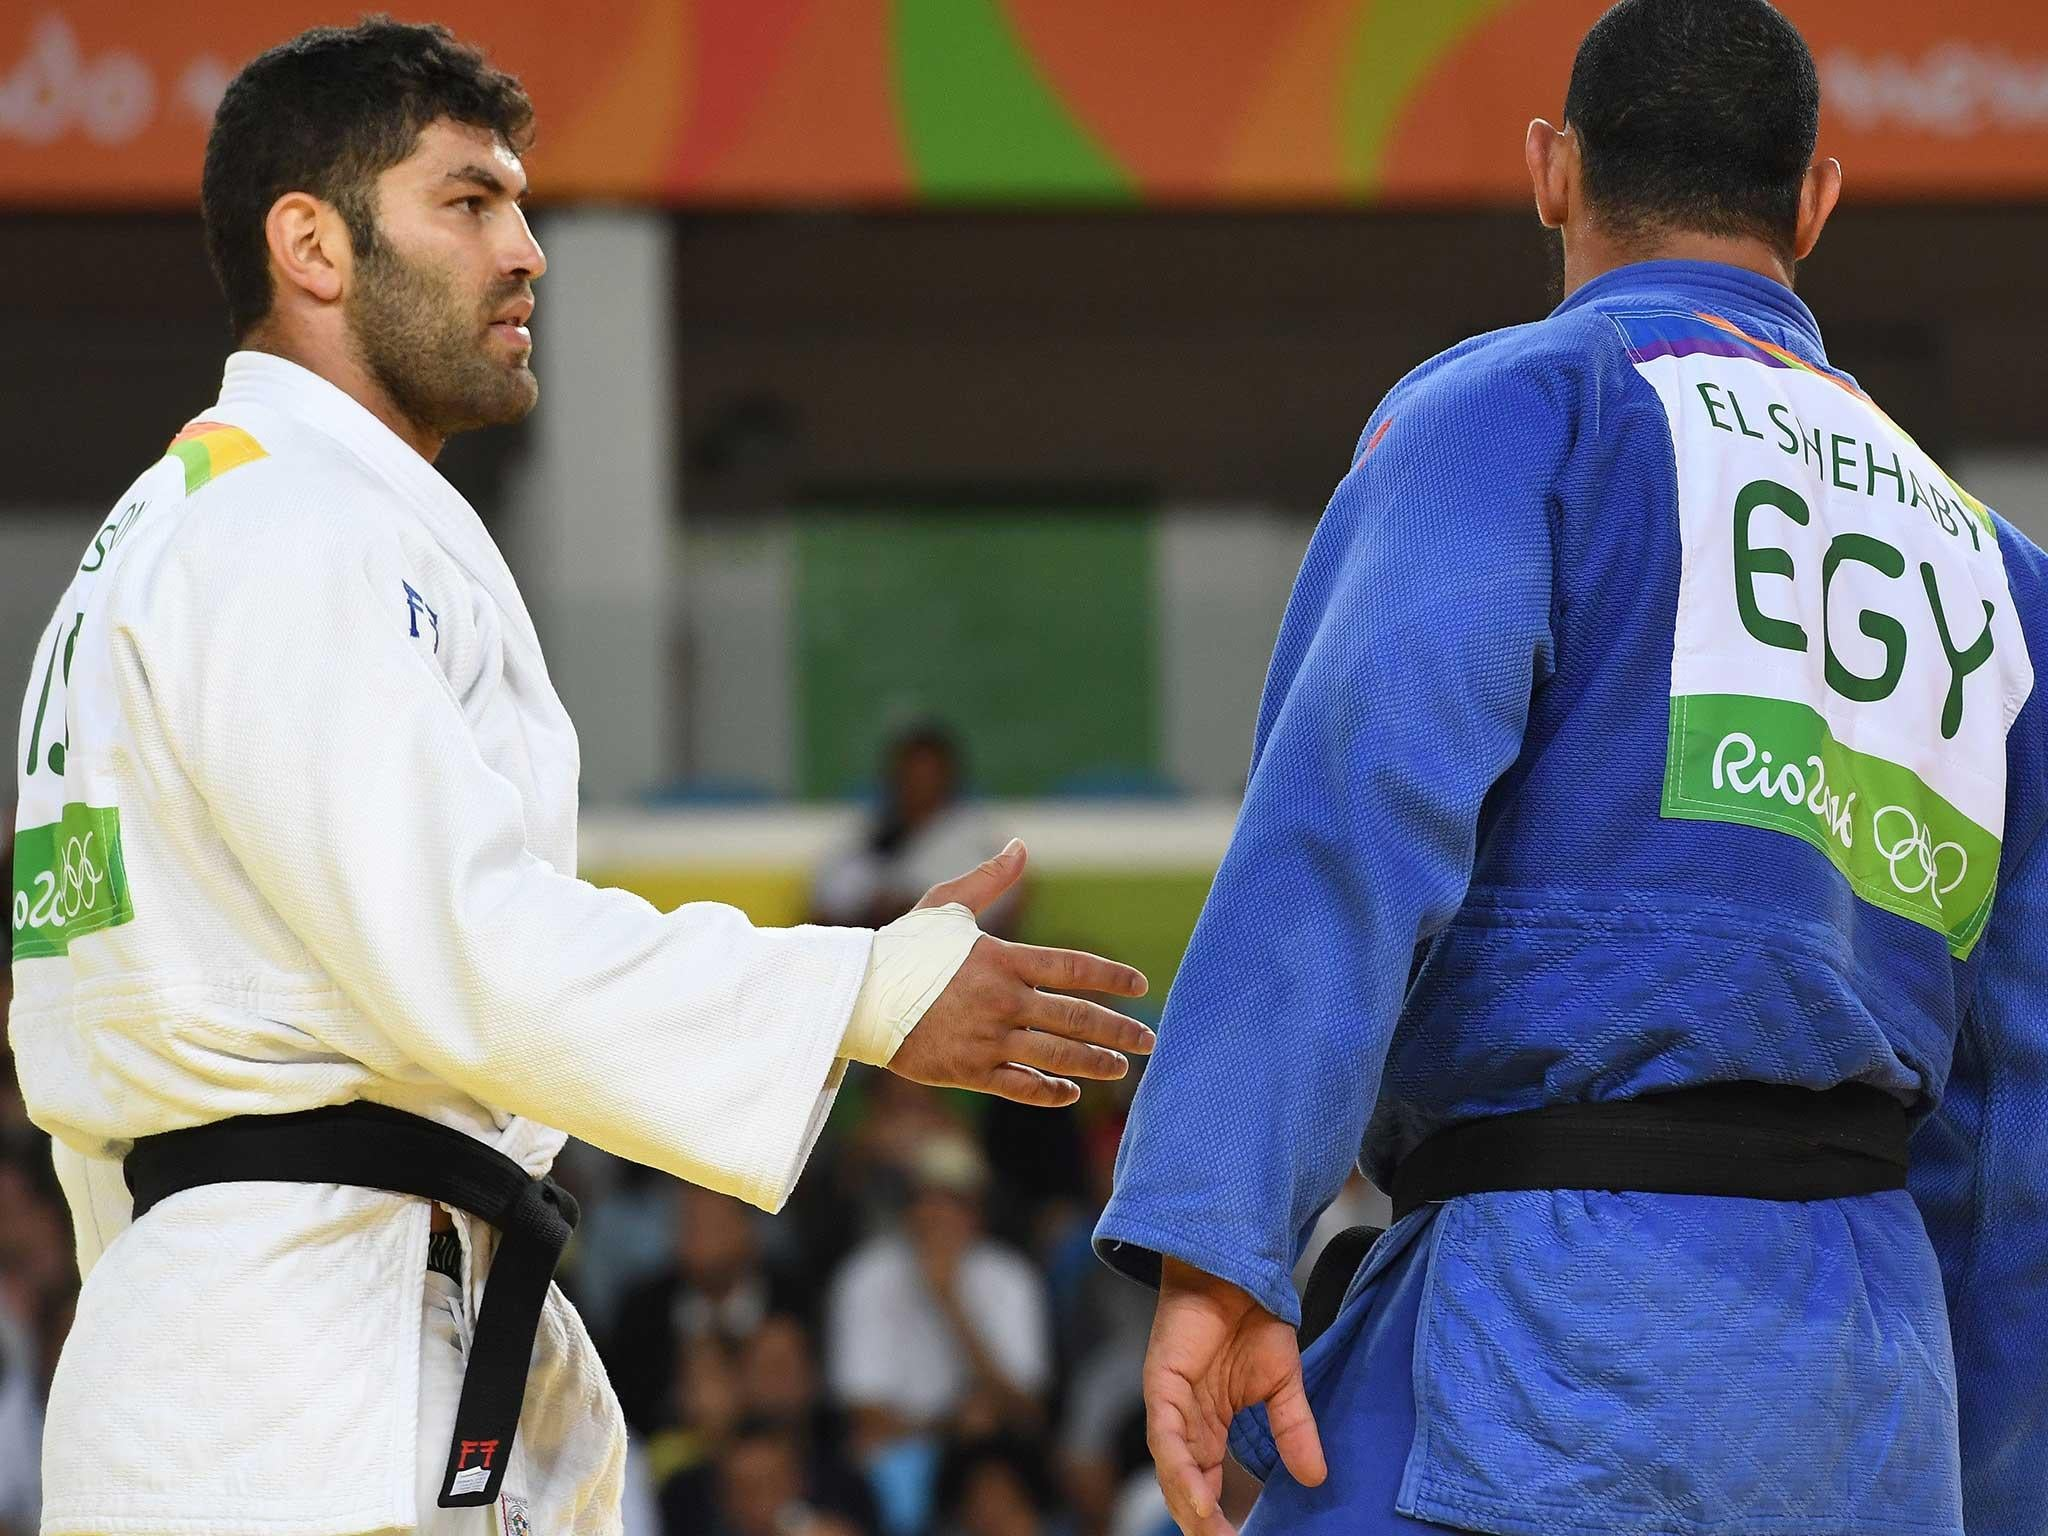 Islam El-Shehaby was sent home for refusing to shake his opponent's hand